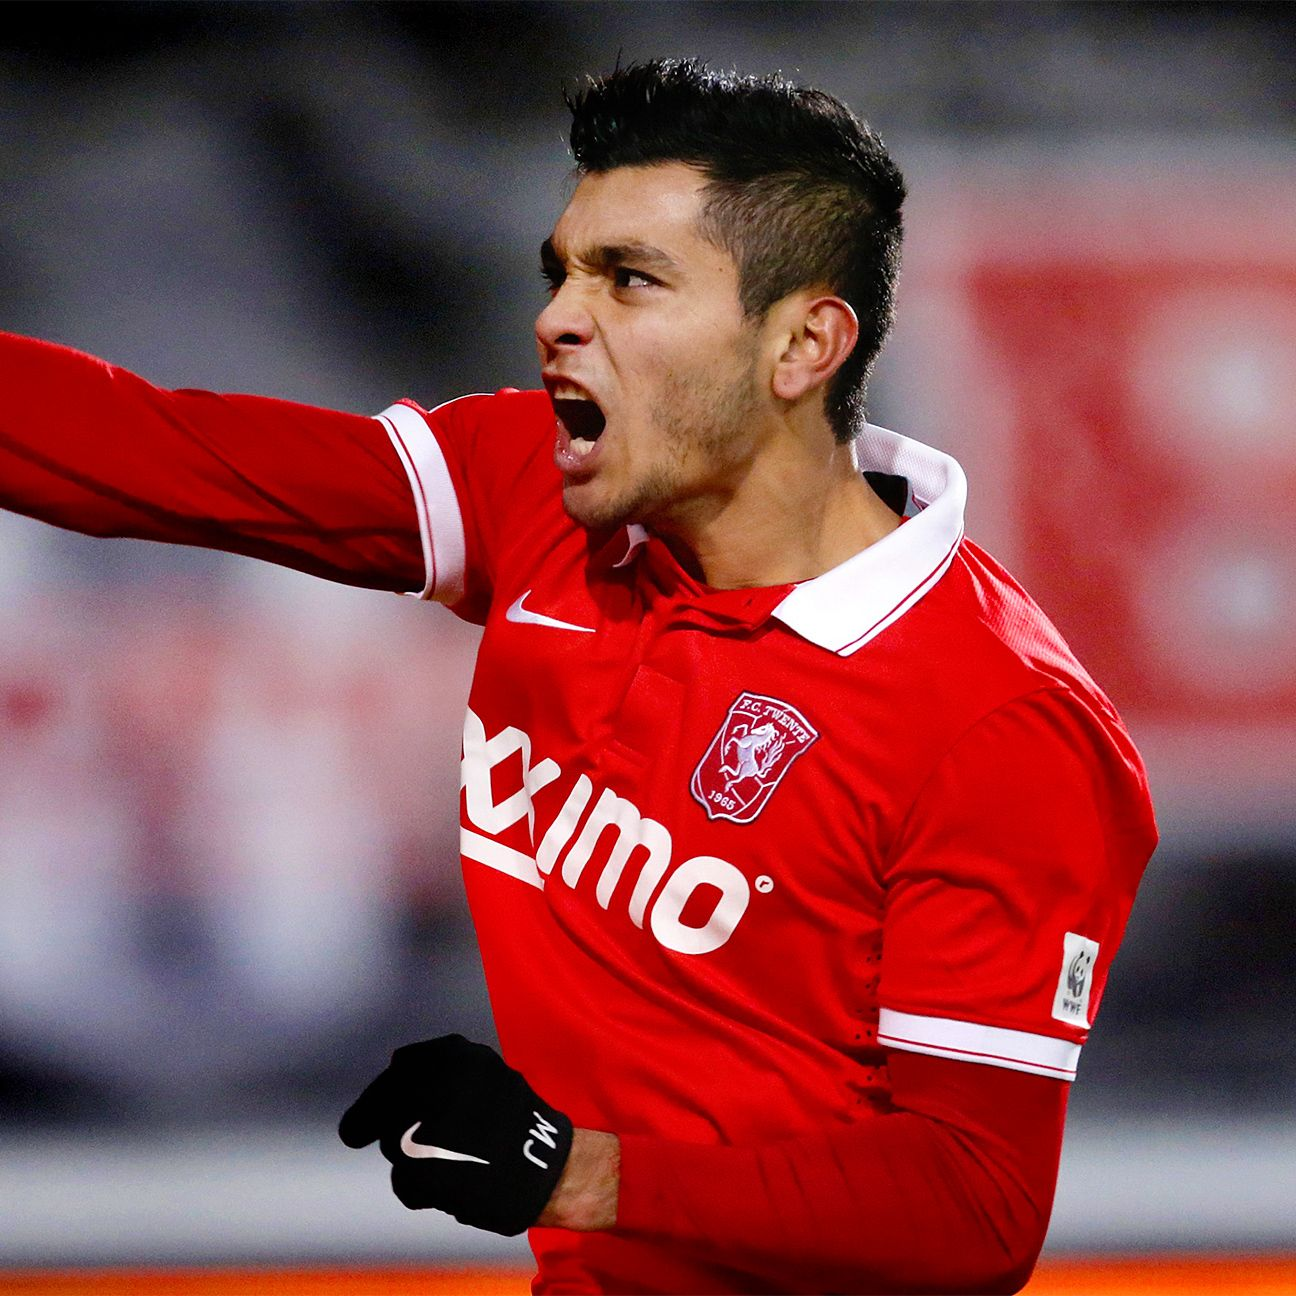 Jesus Corona continues to impress in the Eredivisie with Twente.